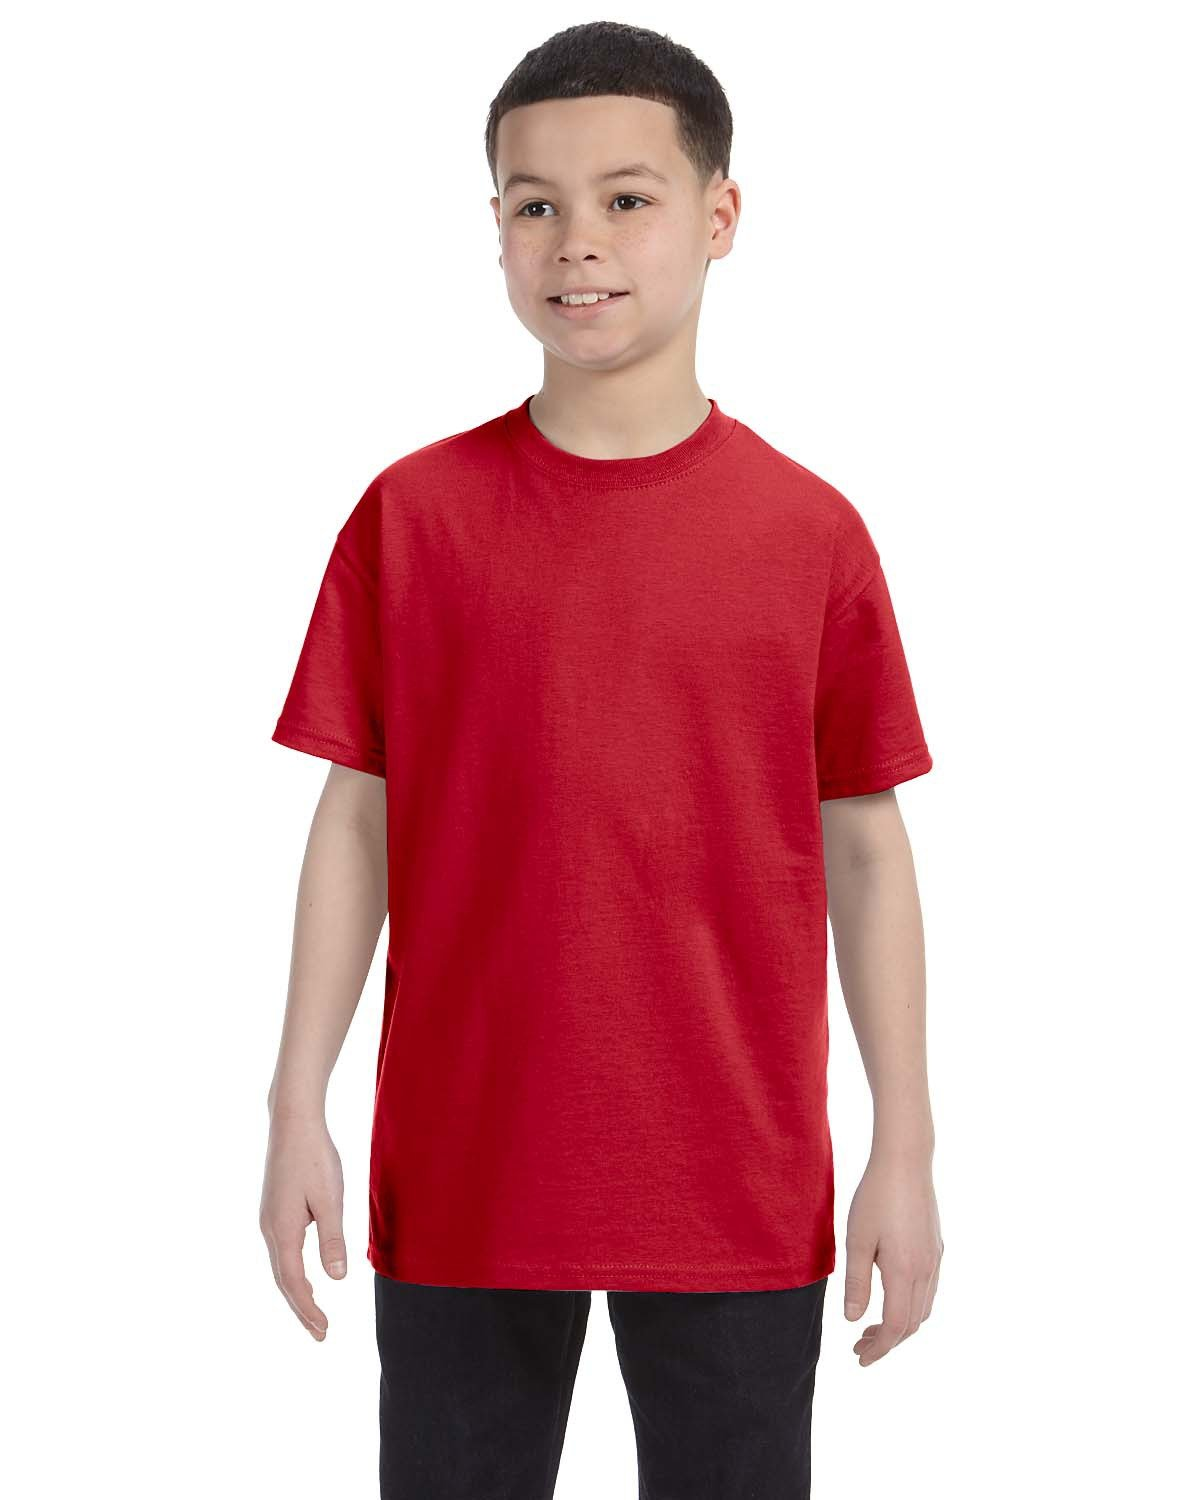 Hanes Youth Authentic-T T-Shirt DEEP RED